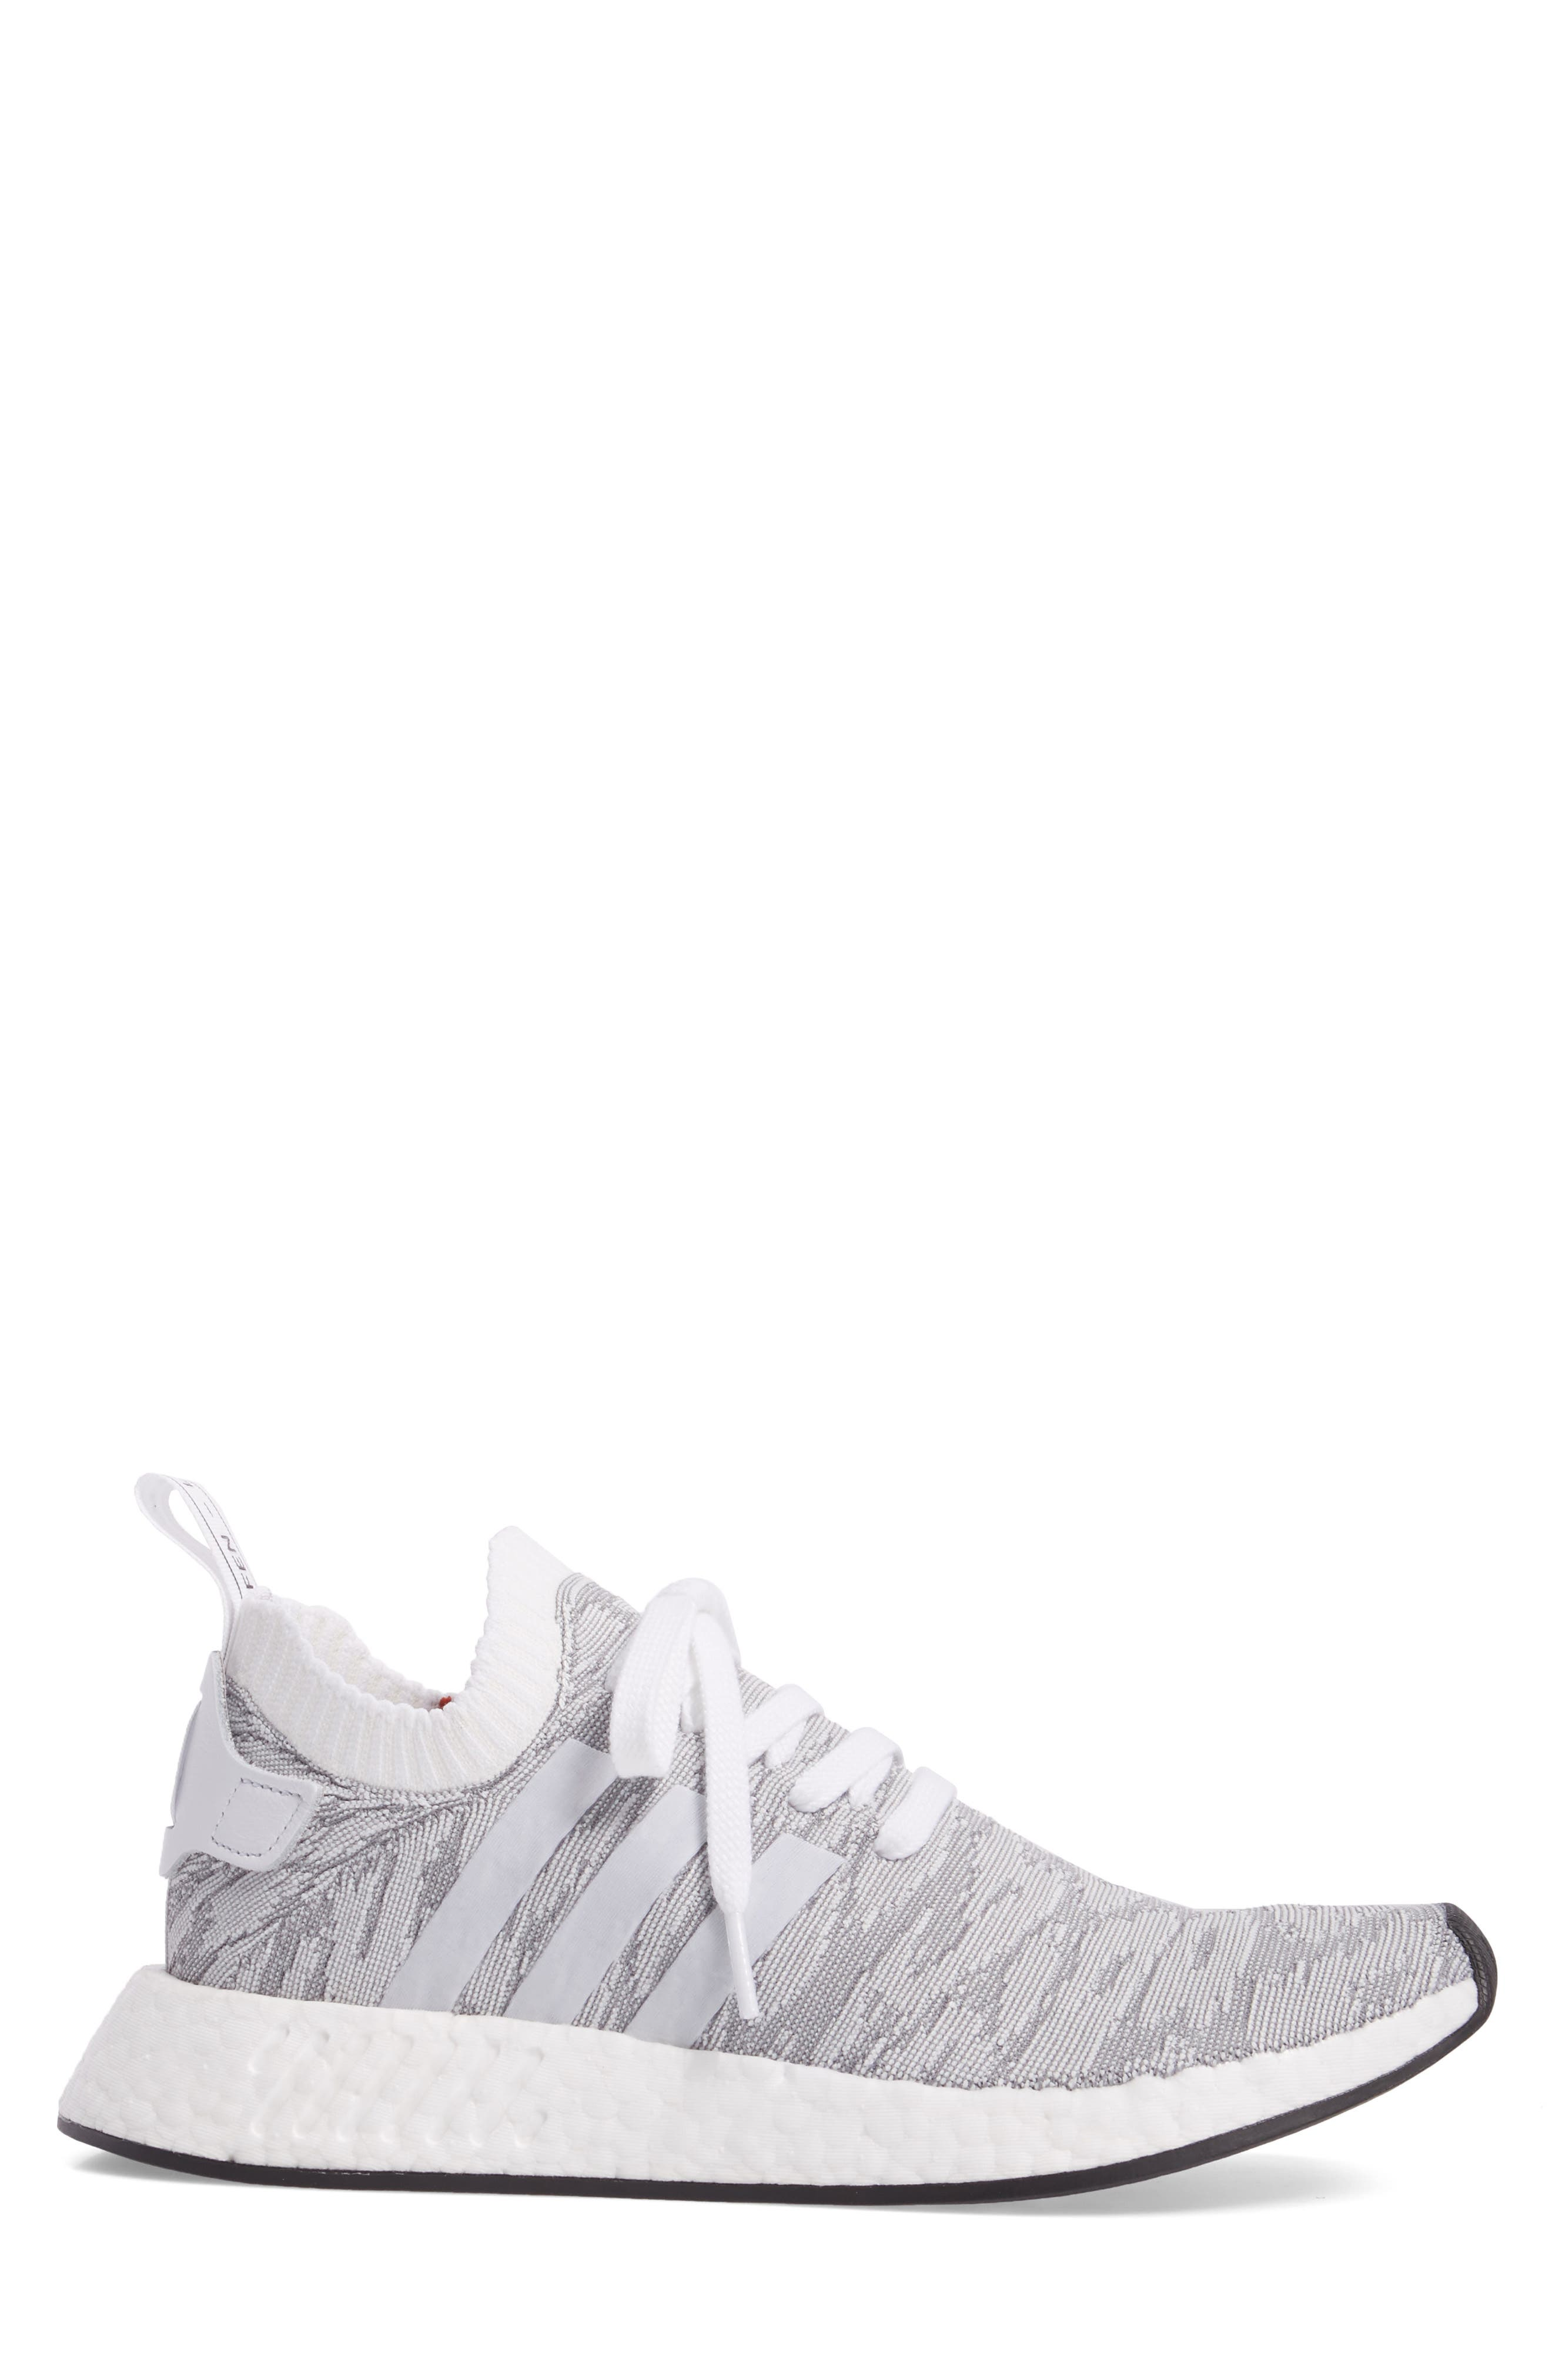 NMD R2 Primeknit Running Shoe,                             Alternate thumbnail 3, color,                             White/ White/ Core Black